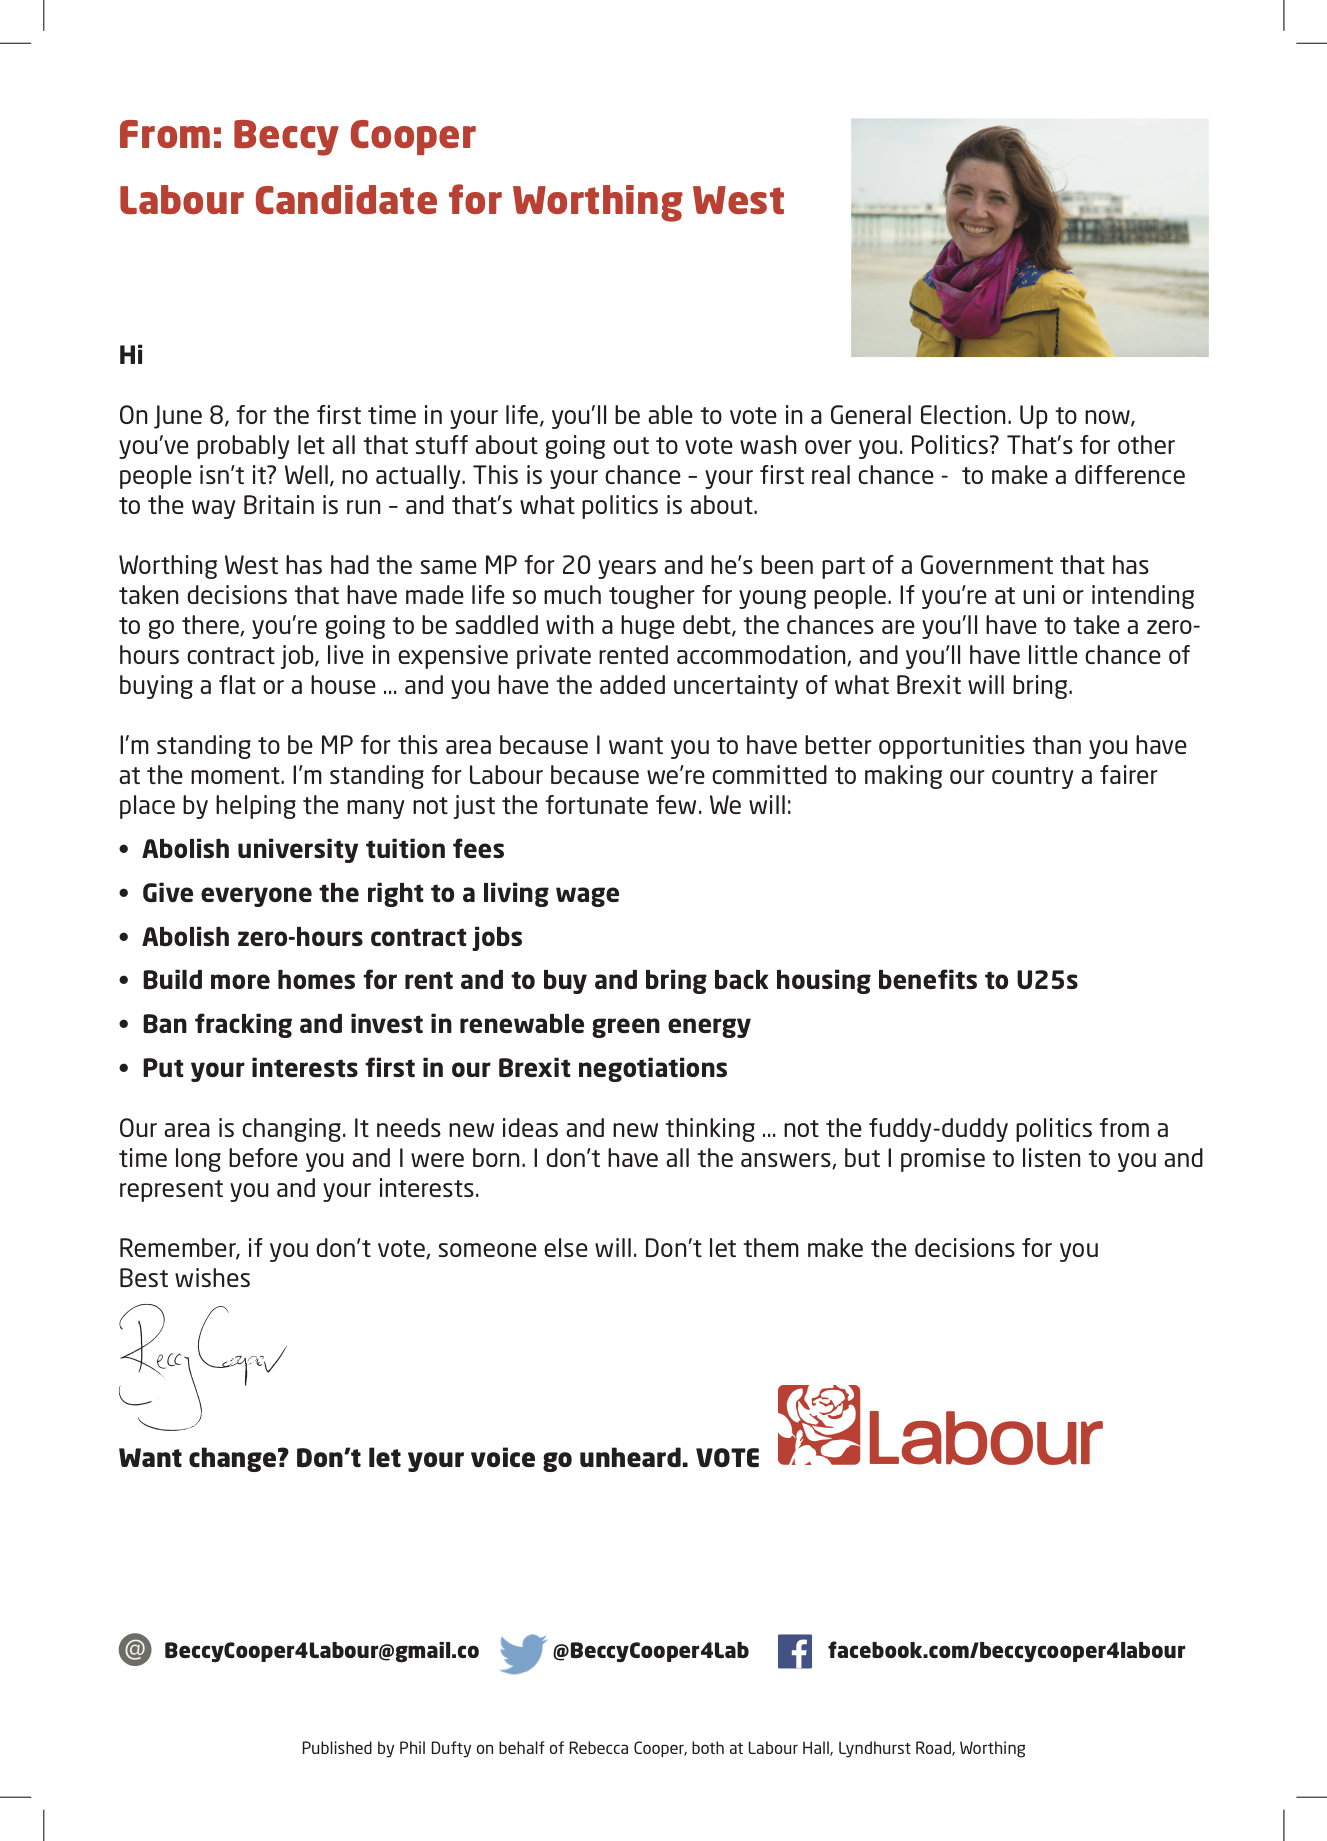 Letter to first time voters